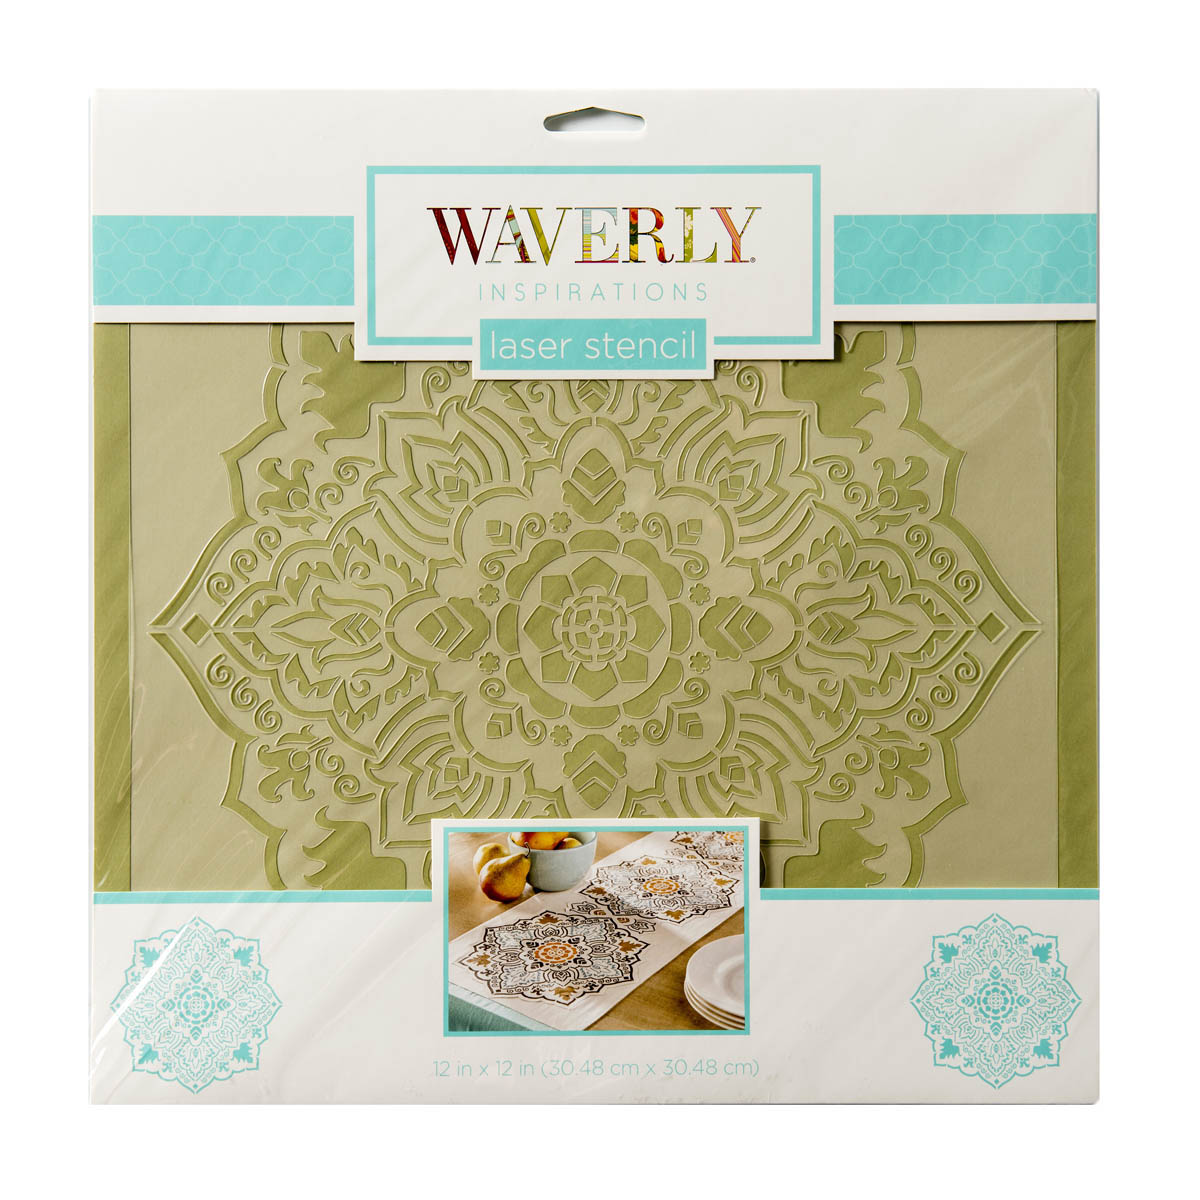 Waverly ® Inspirations Laser Stencils - Décor - Tile, 12